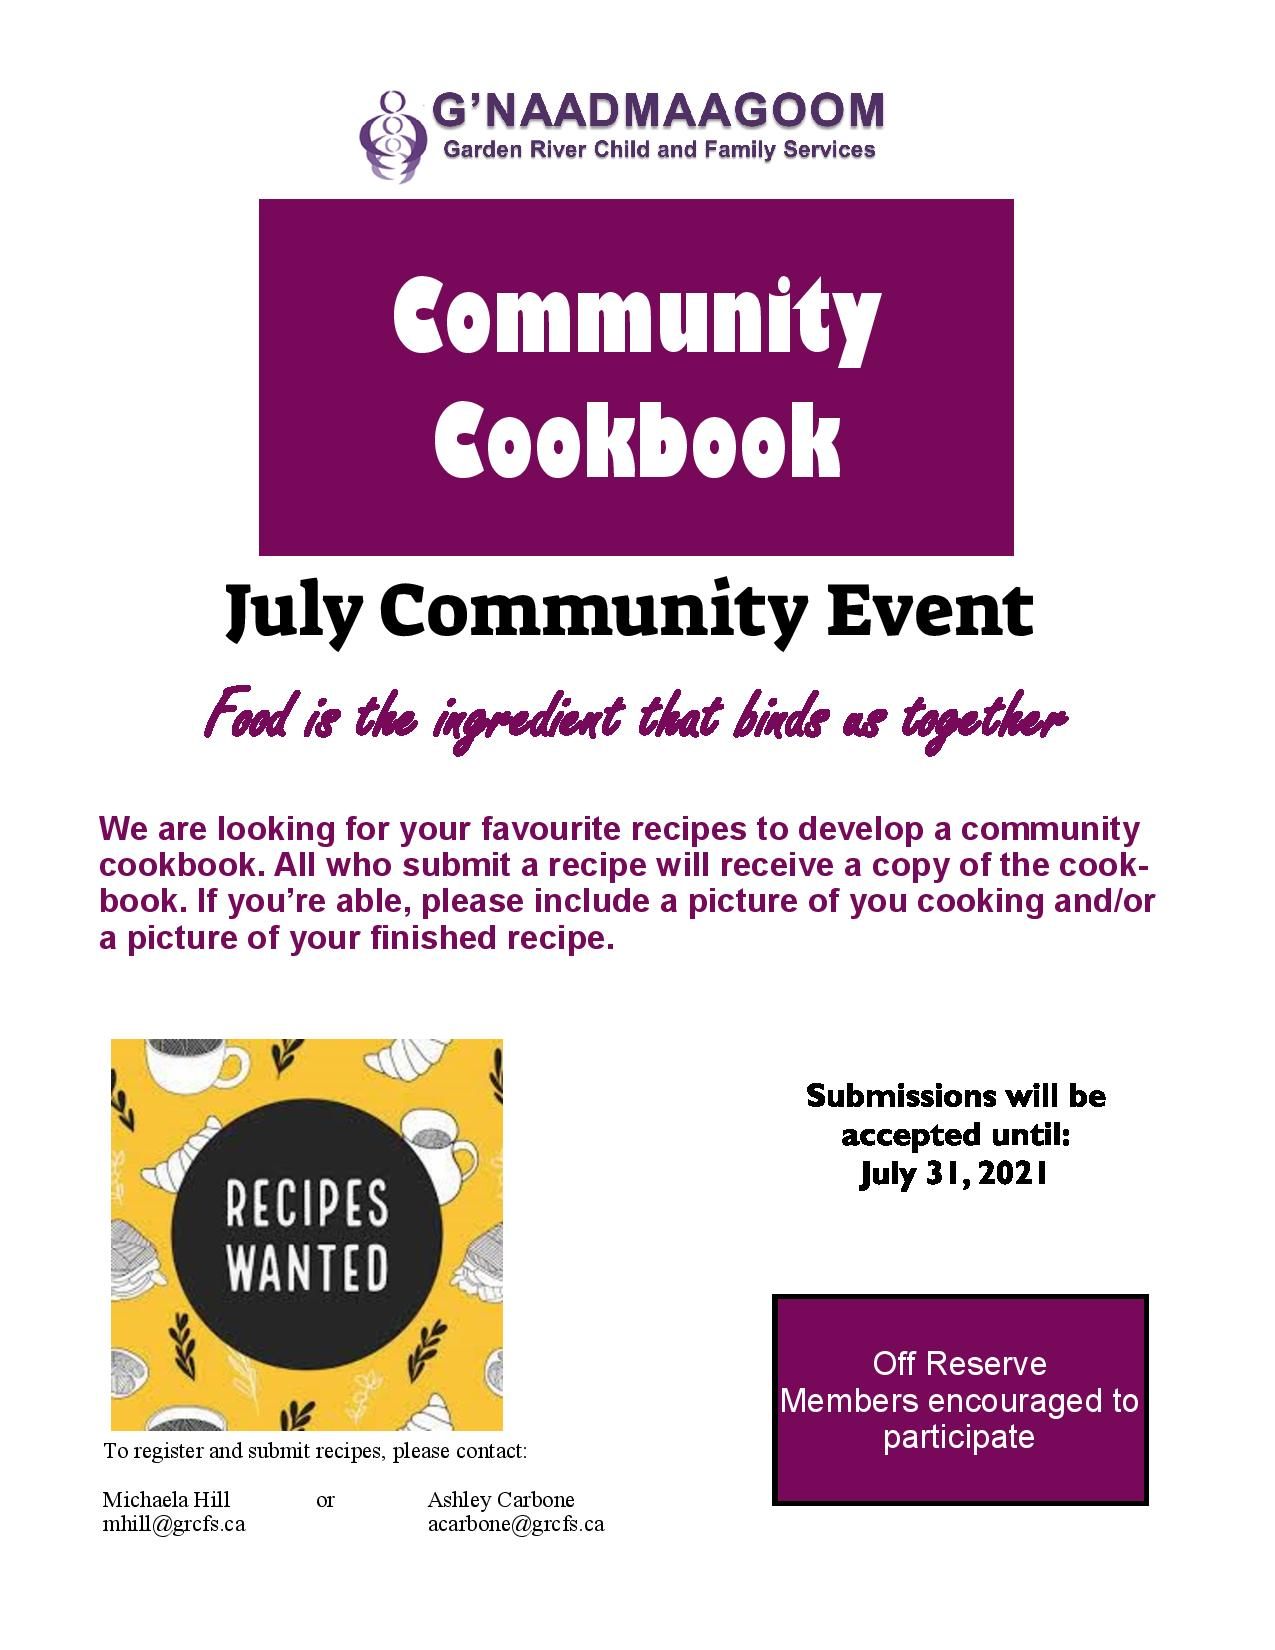 Garden River First Nation Child & Family Services July Community Event: Community Cookbook